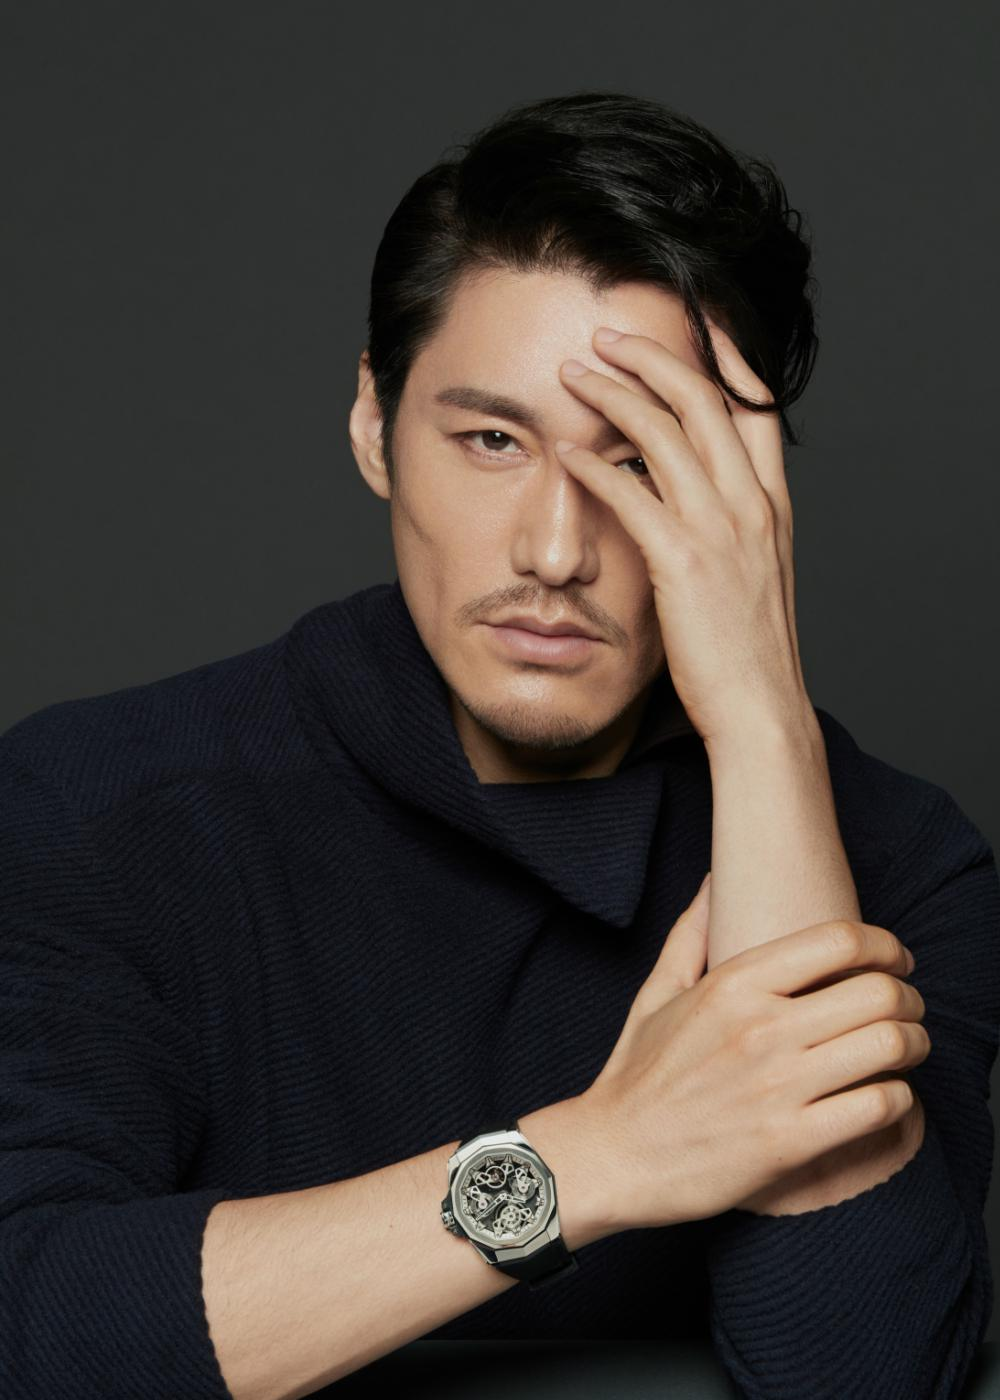 CORUM Global Brand Ambassador Mr. Hu Bing Moodshot 1 - 尽善尽美的绅士风格:胡兵续任 CORUM 品牌代言人